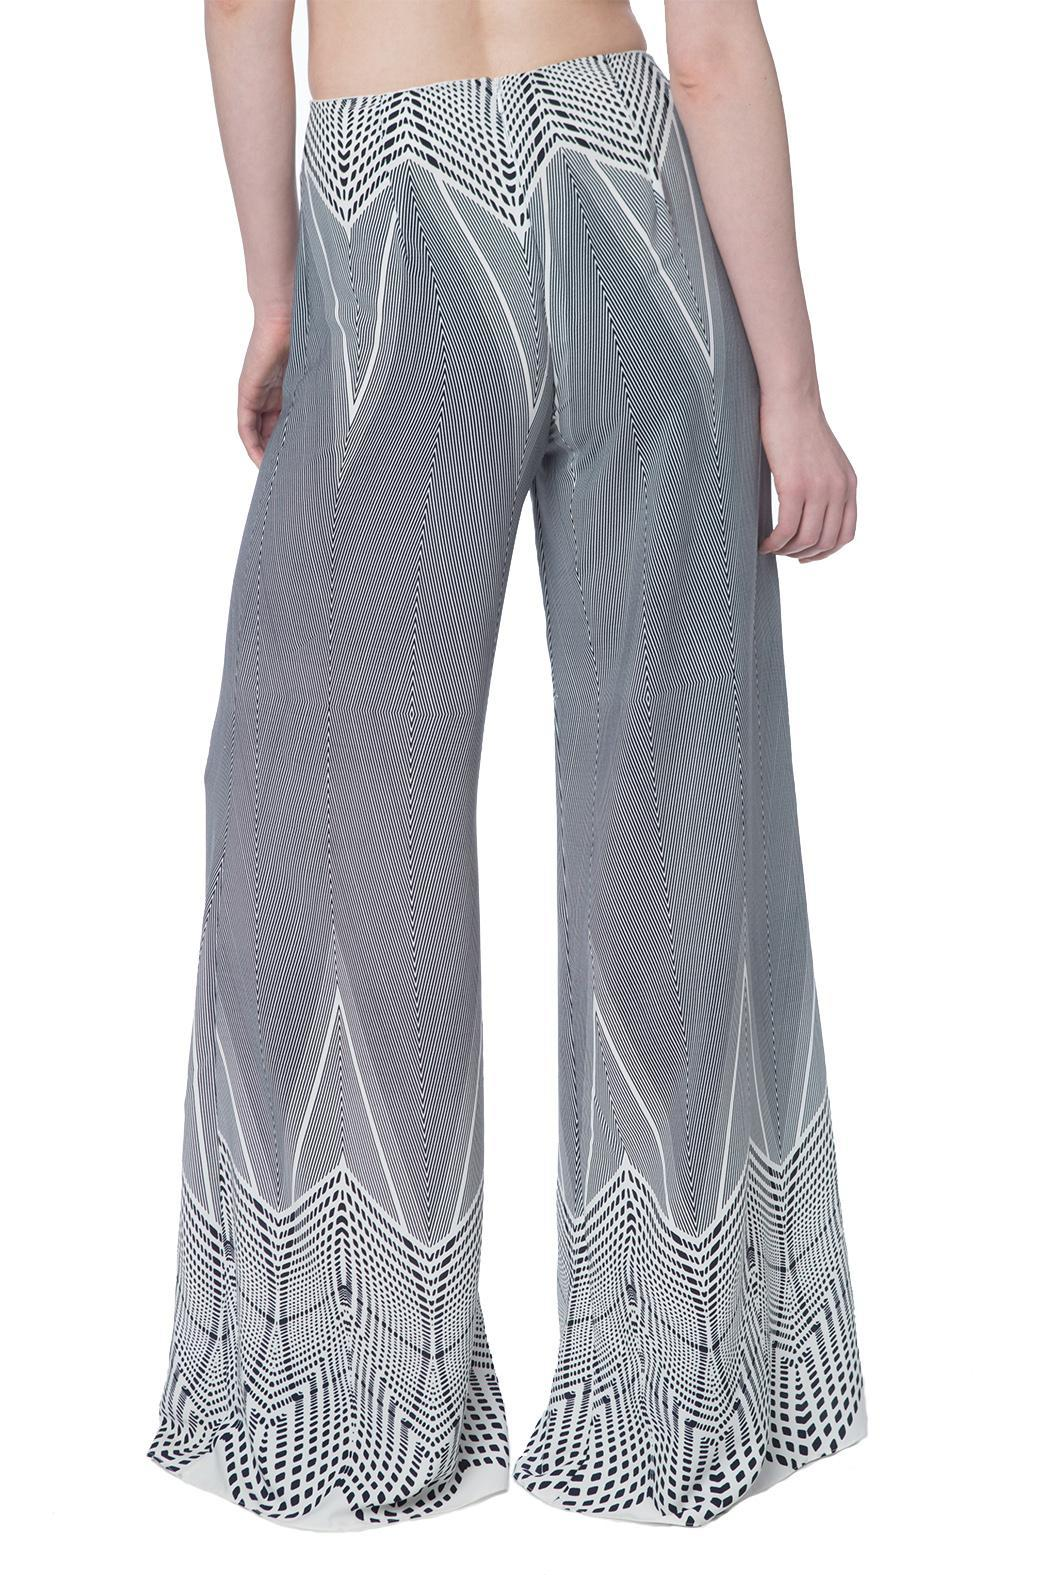 OHLENDORF atelier Graphic Palazzo Pant - Side Cropped Image